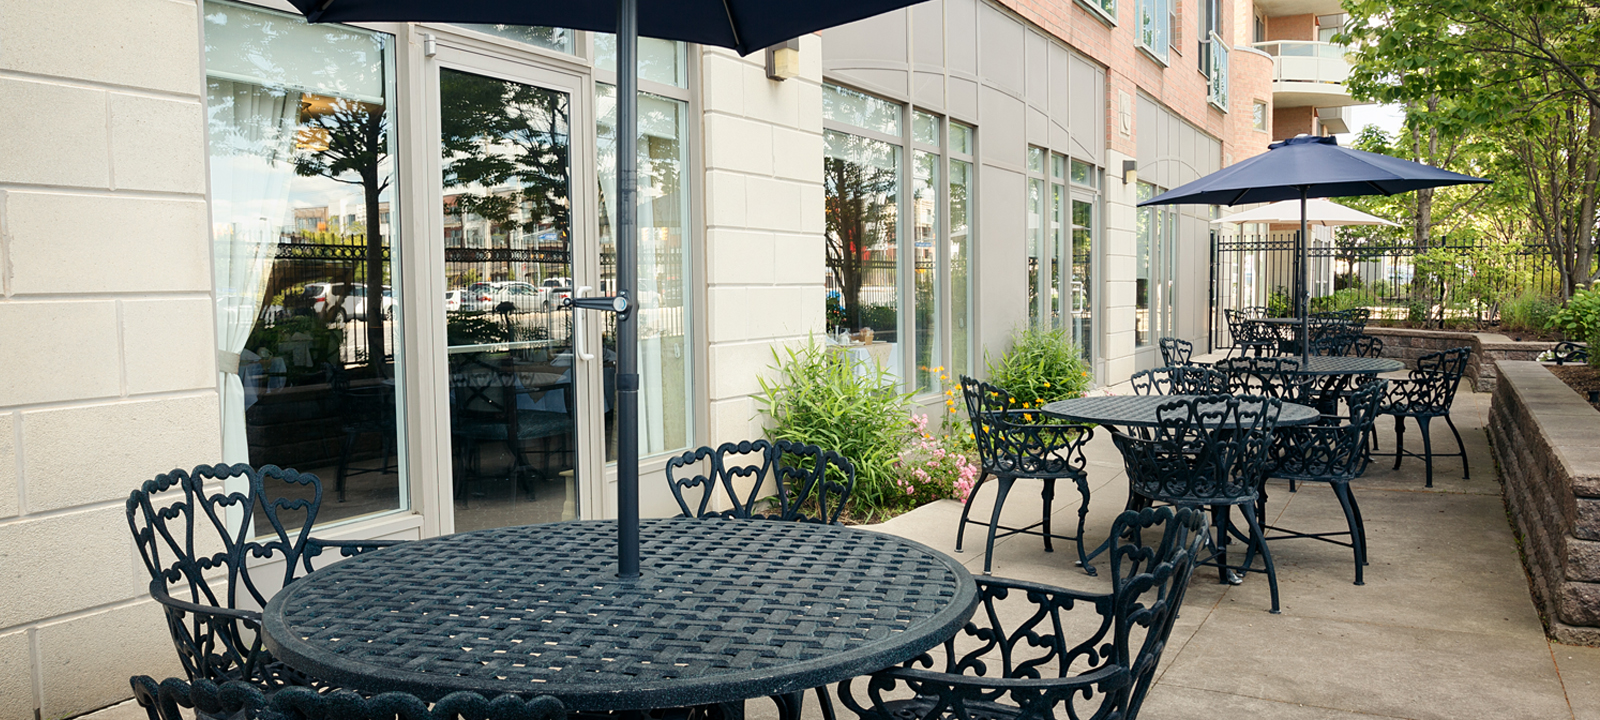 Beautiful outdoor patio at Amica Erin Mills senior living residence.